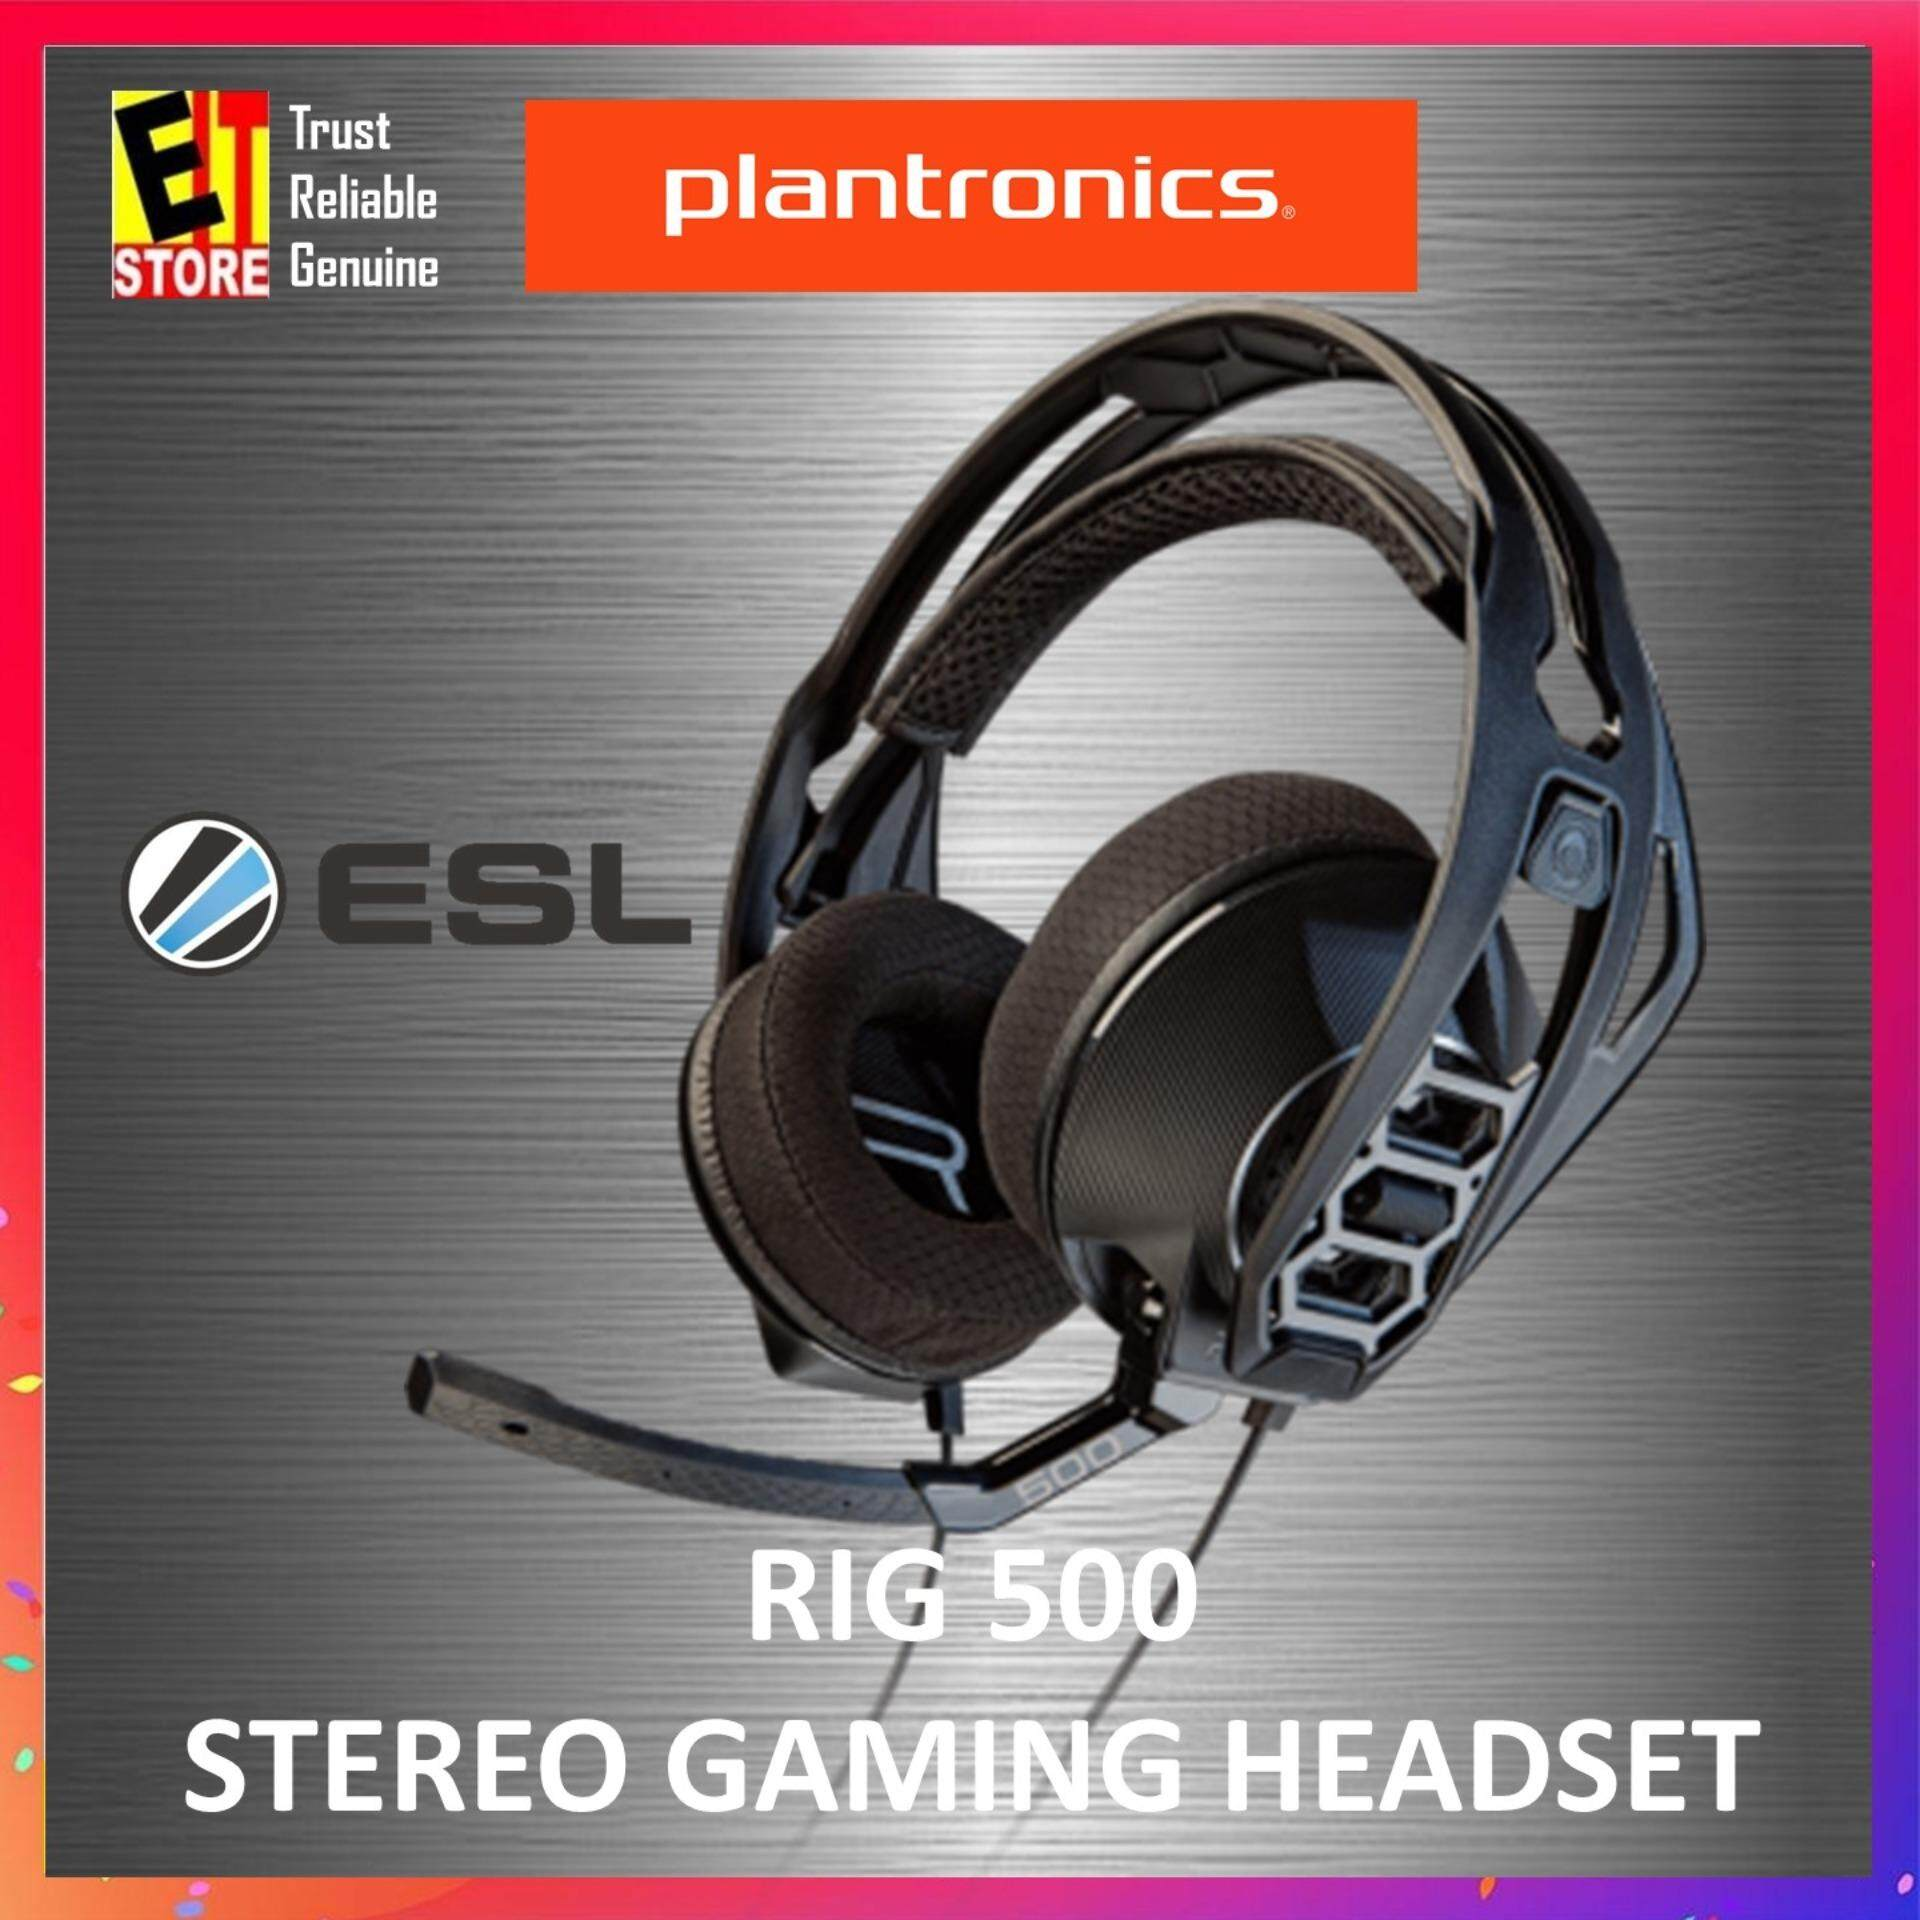 PLANTRONICS RIG 500 STEREO PC GAMING HEADSET GAMING STARTER PACK